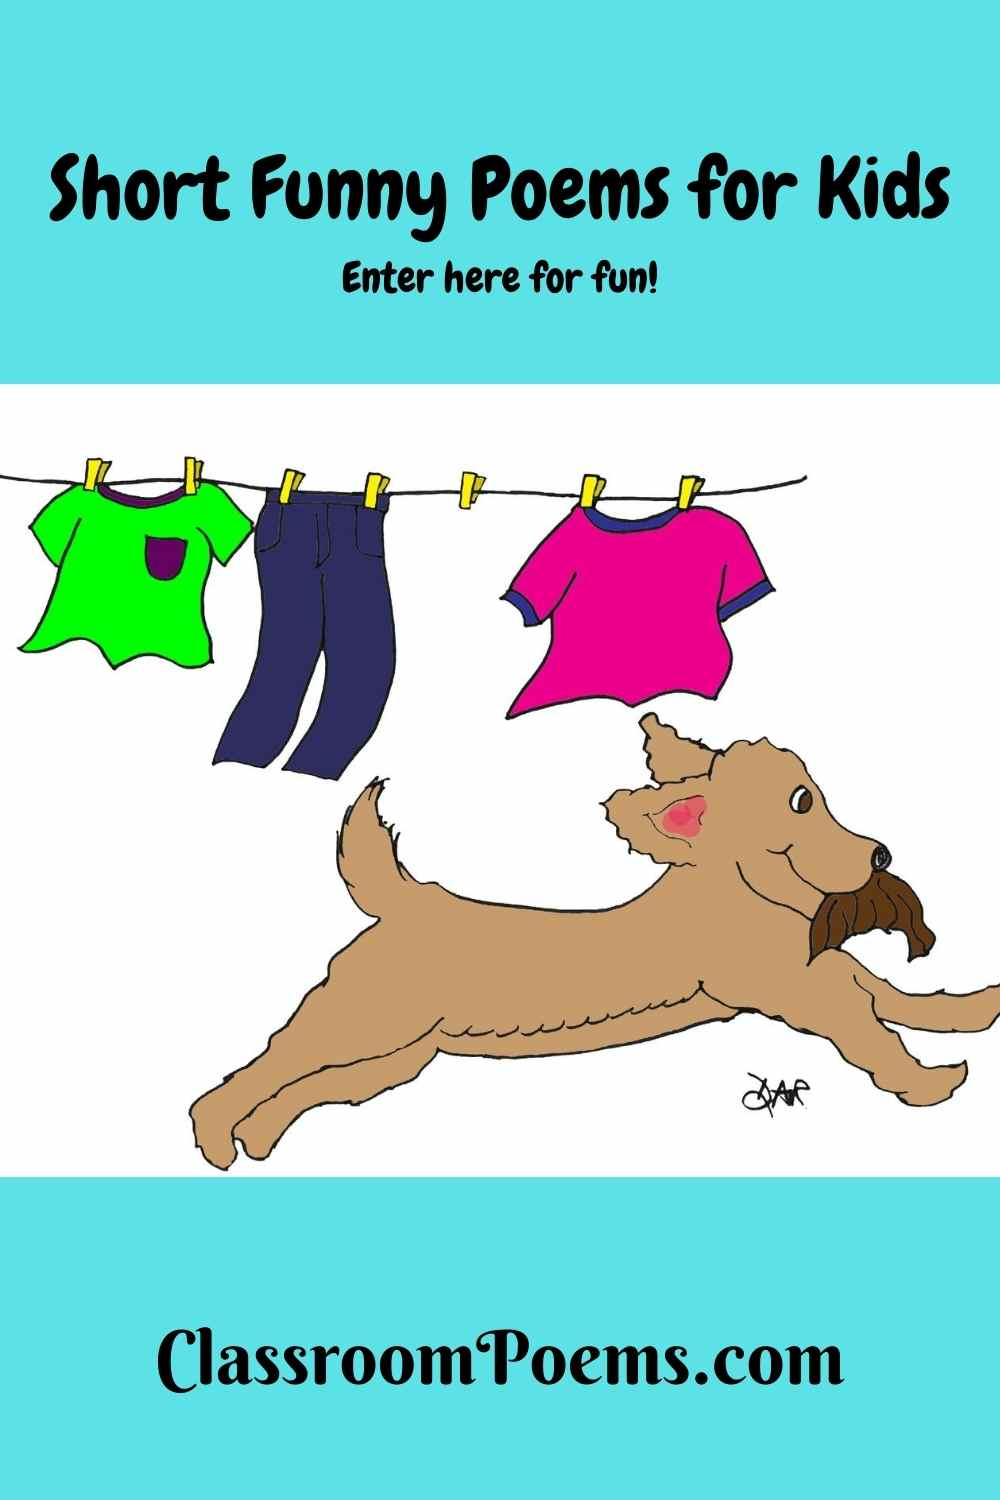 Short funny poems for kids by Denise Rodgers on ClassroomPoems.com. Dog stealing wig.